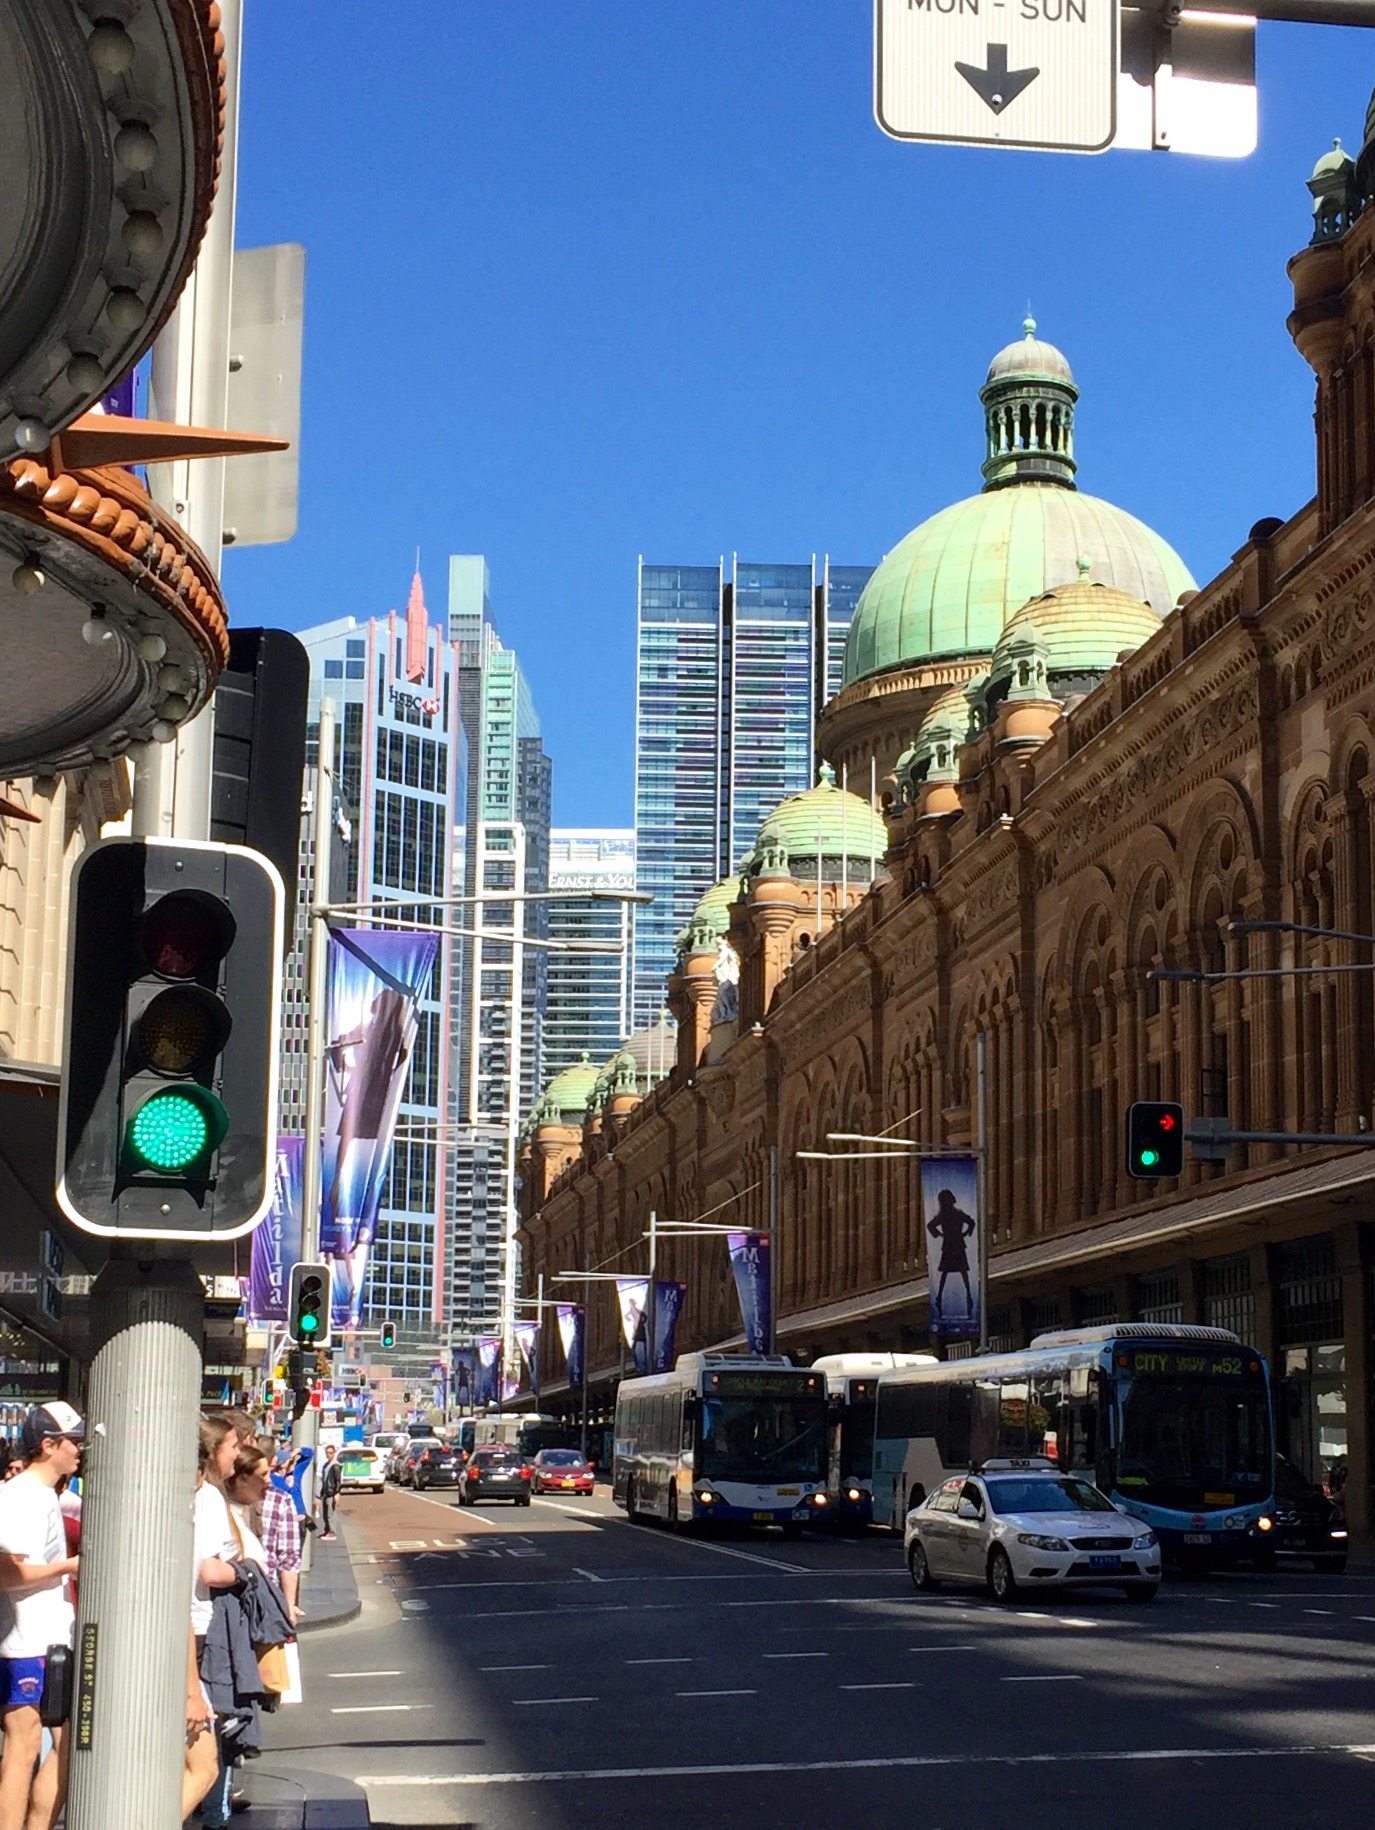 The QVB: My Aussie neighborhood shopping centre!